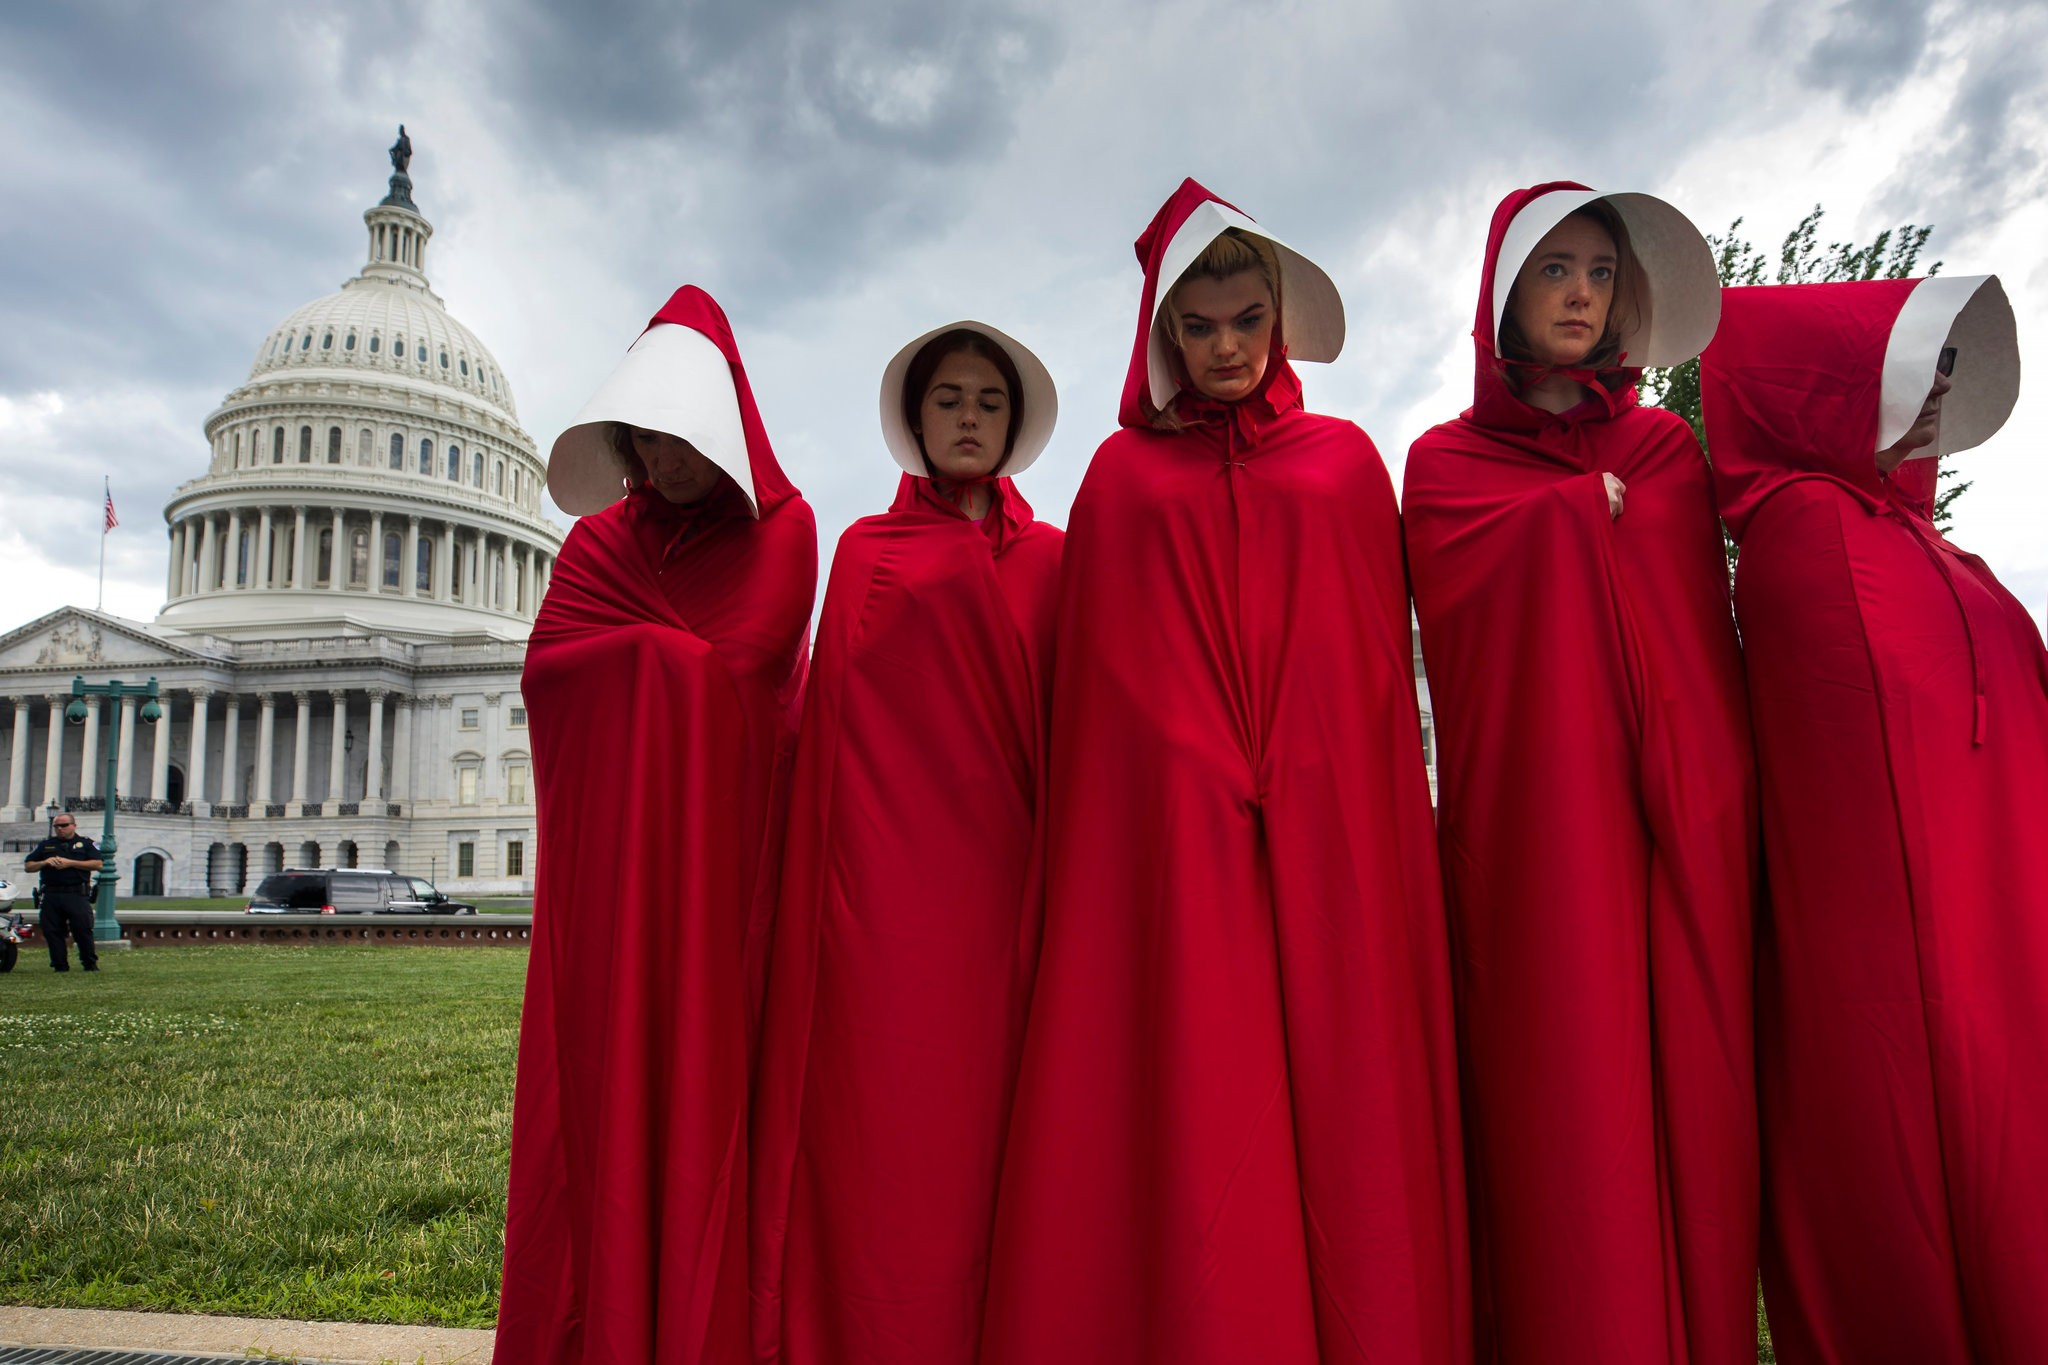 A group of women from A Handmaid's Tale in front of the U.S. Capitol building